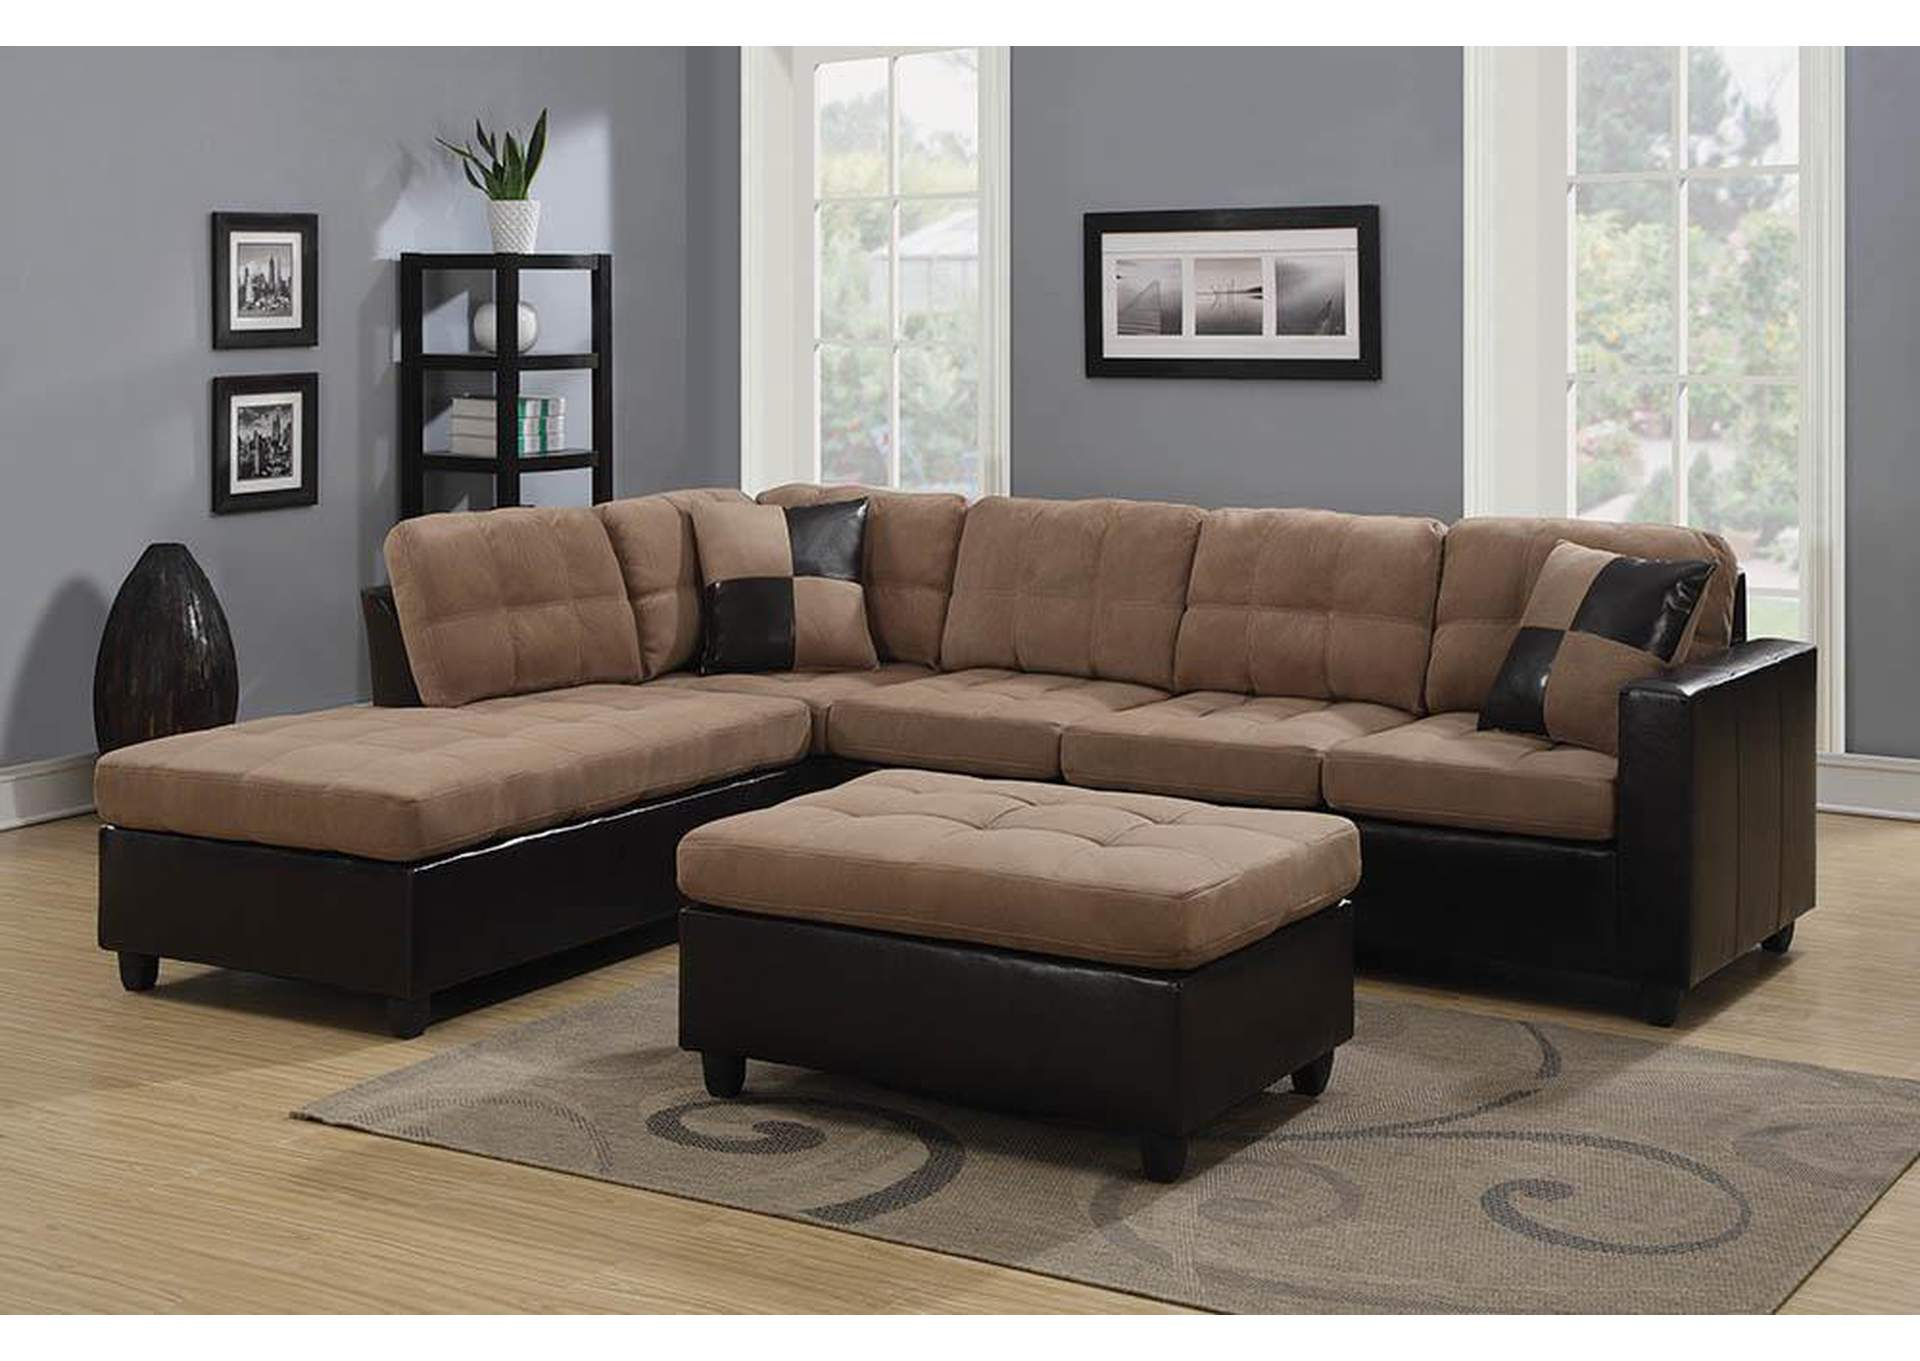 Mallory Tan Sectional,Coaster Furniture